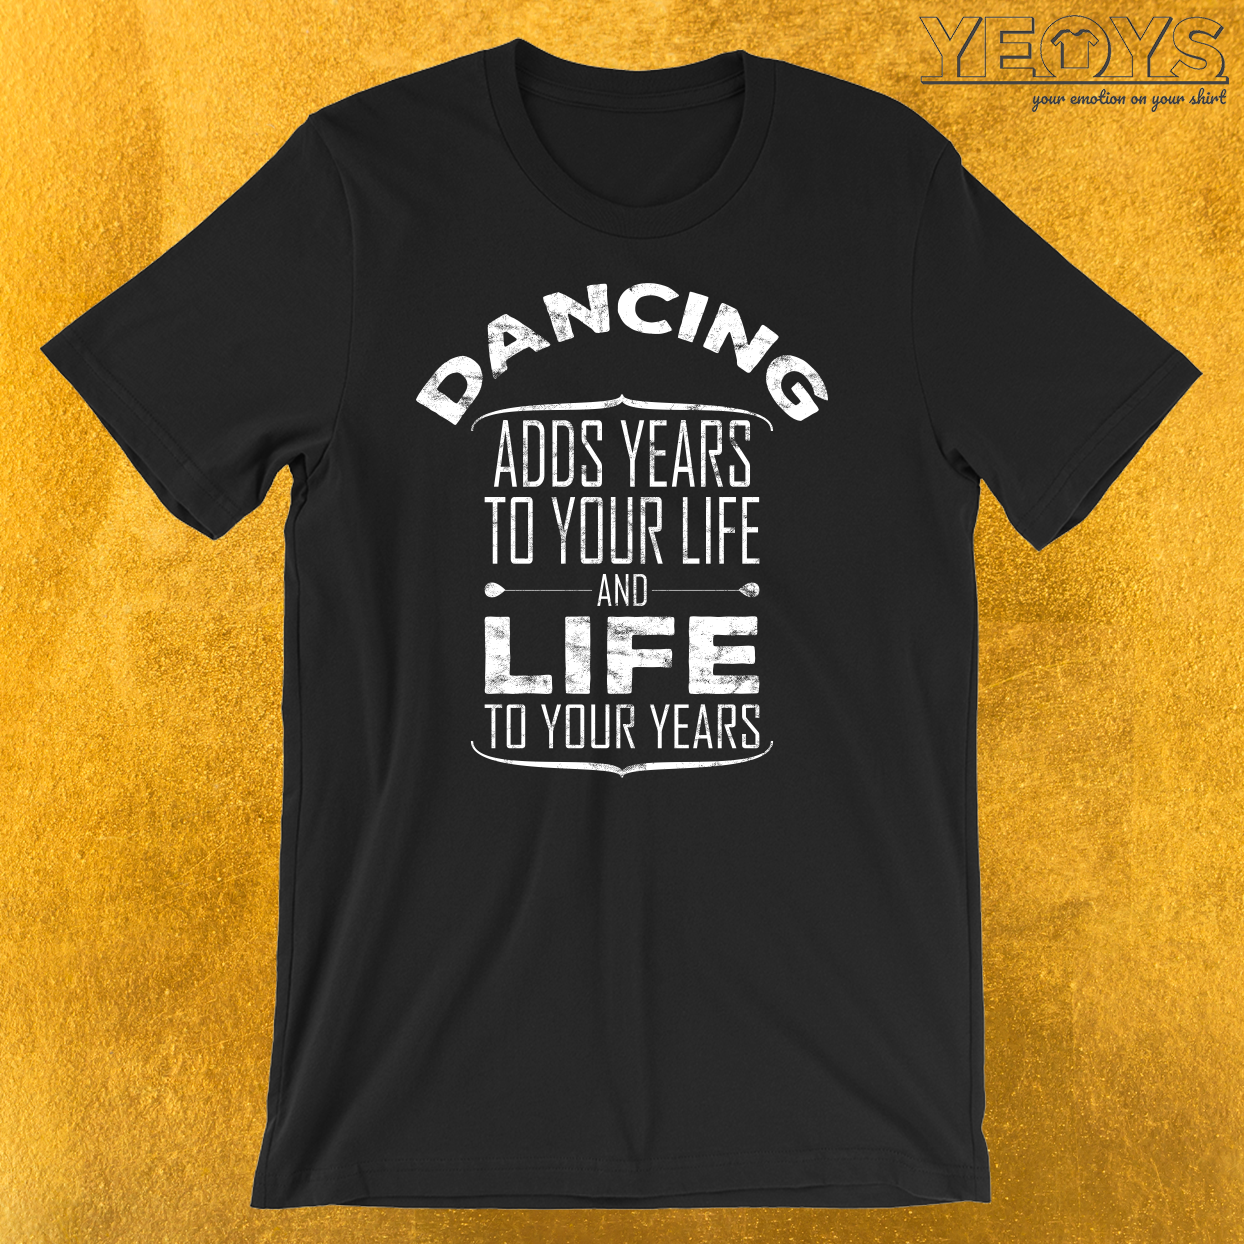 Dancing Adds Life To Your Years T-Shirt